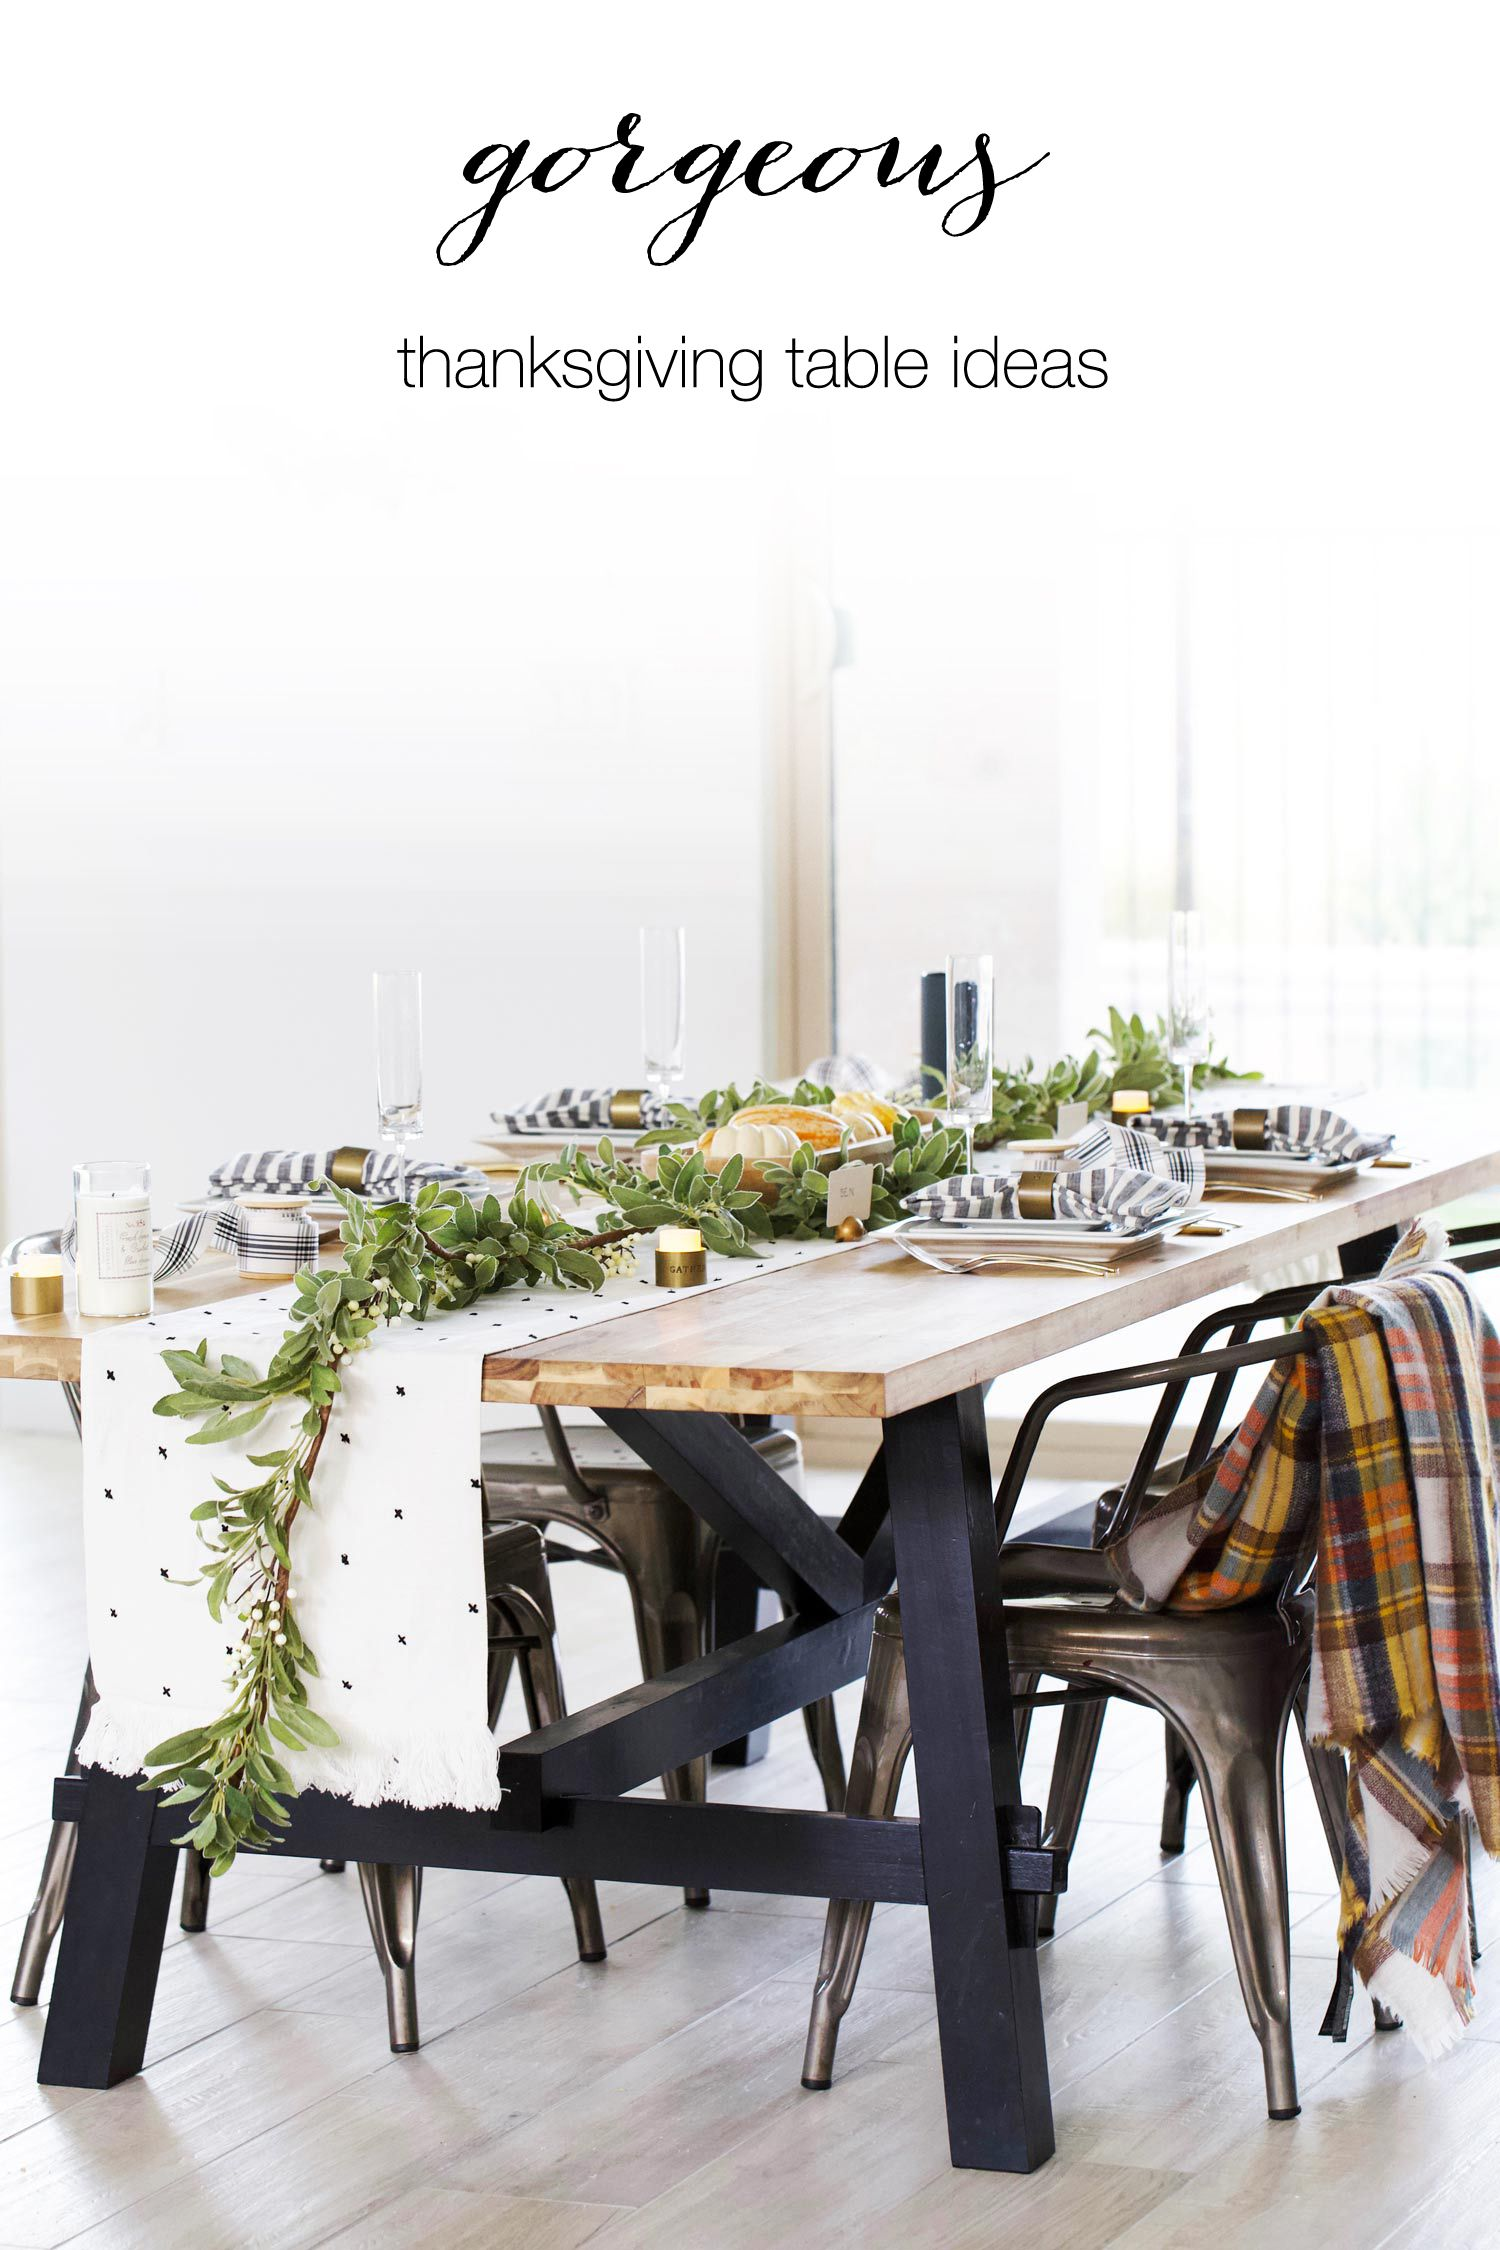 Nov 21 Our Thanksgiving Tablescape   Pinterest   Table settings and ...